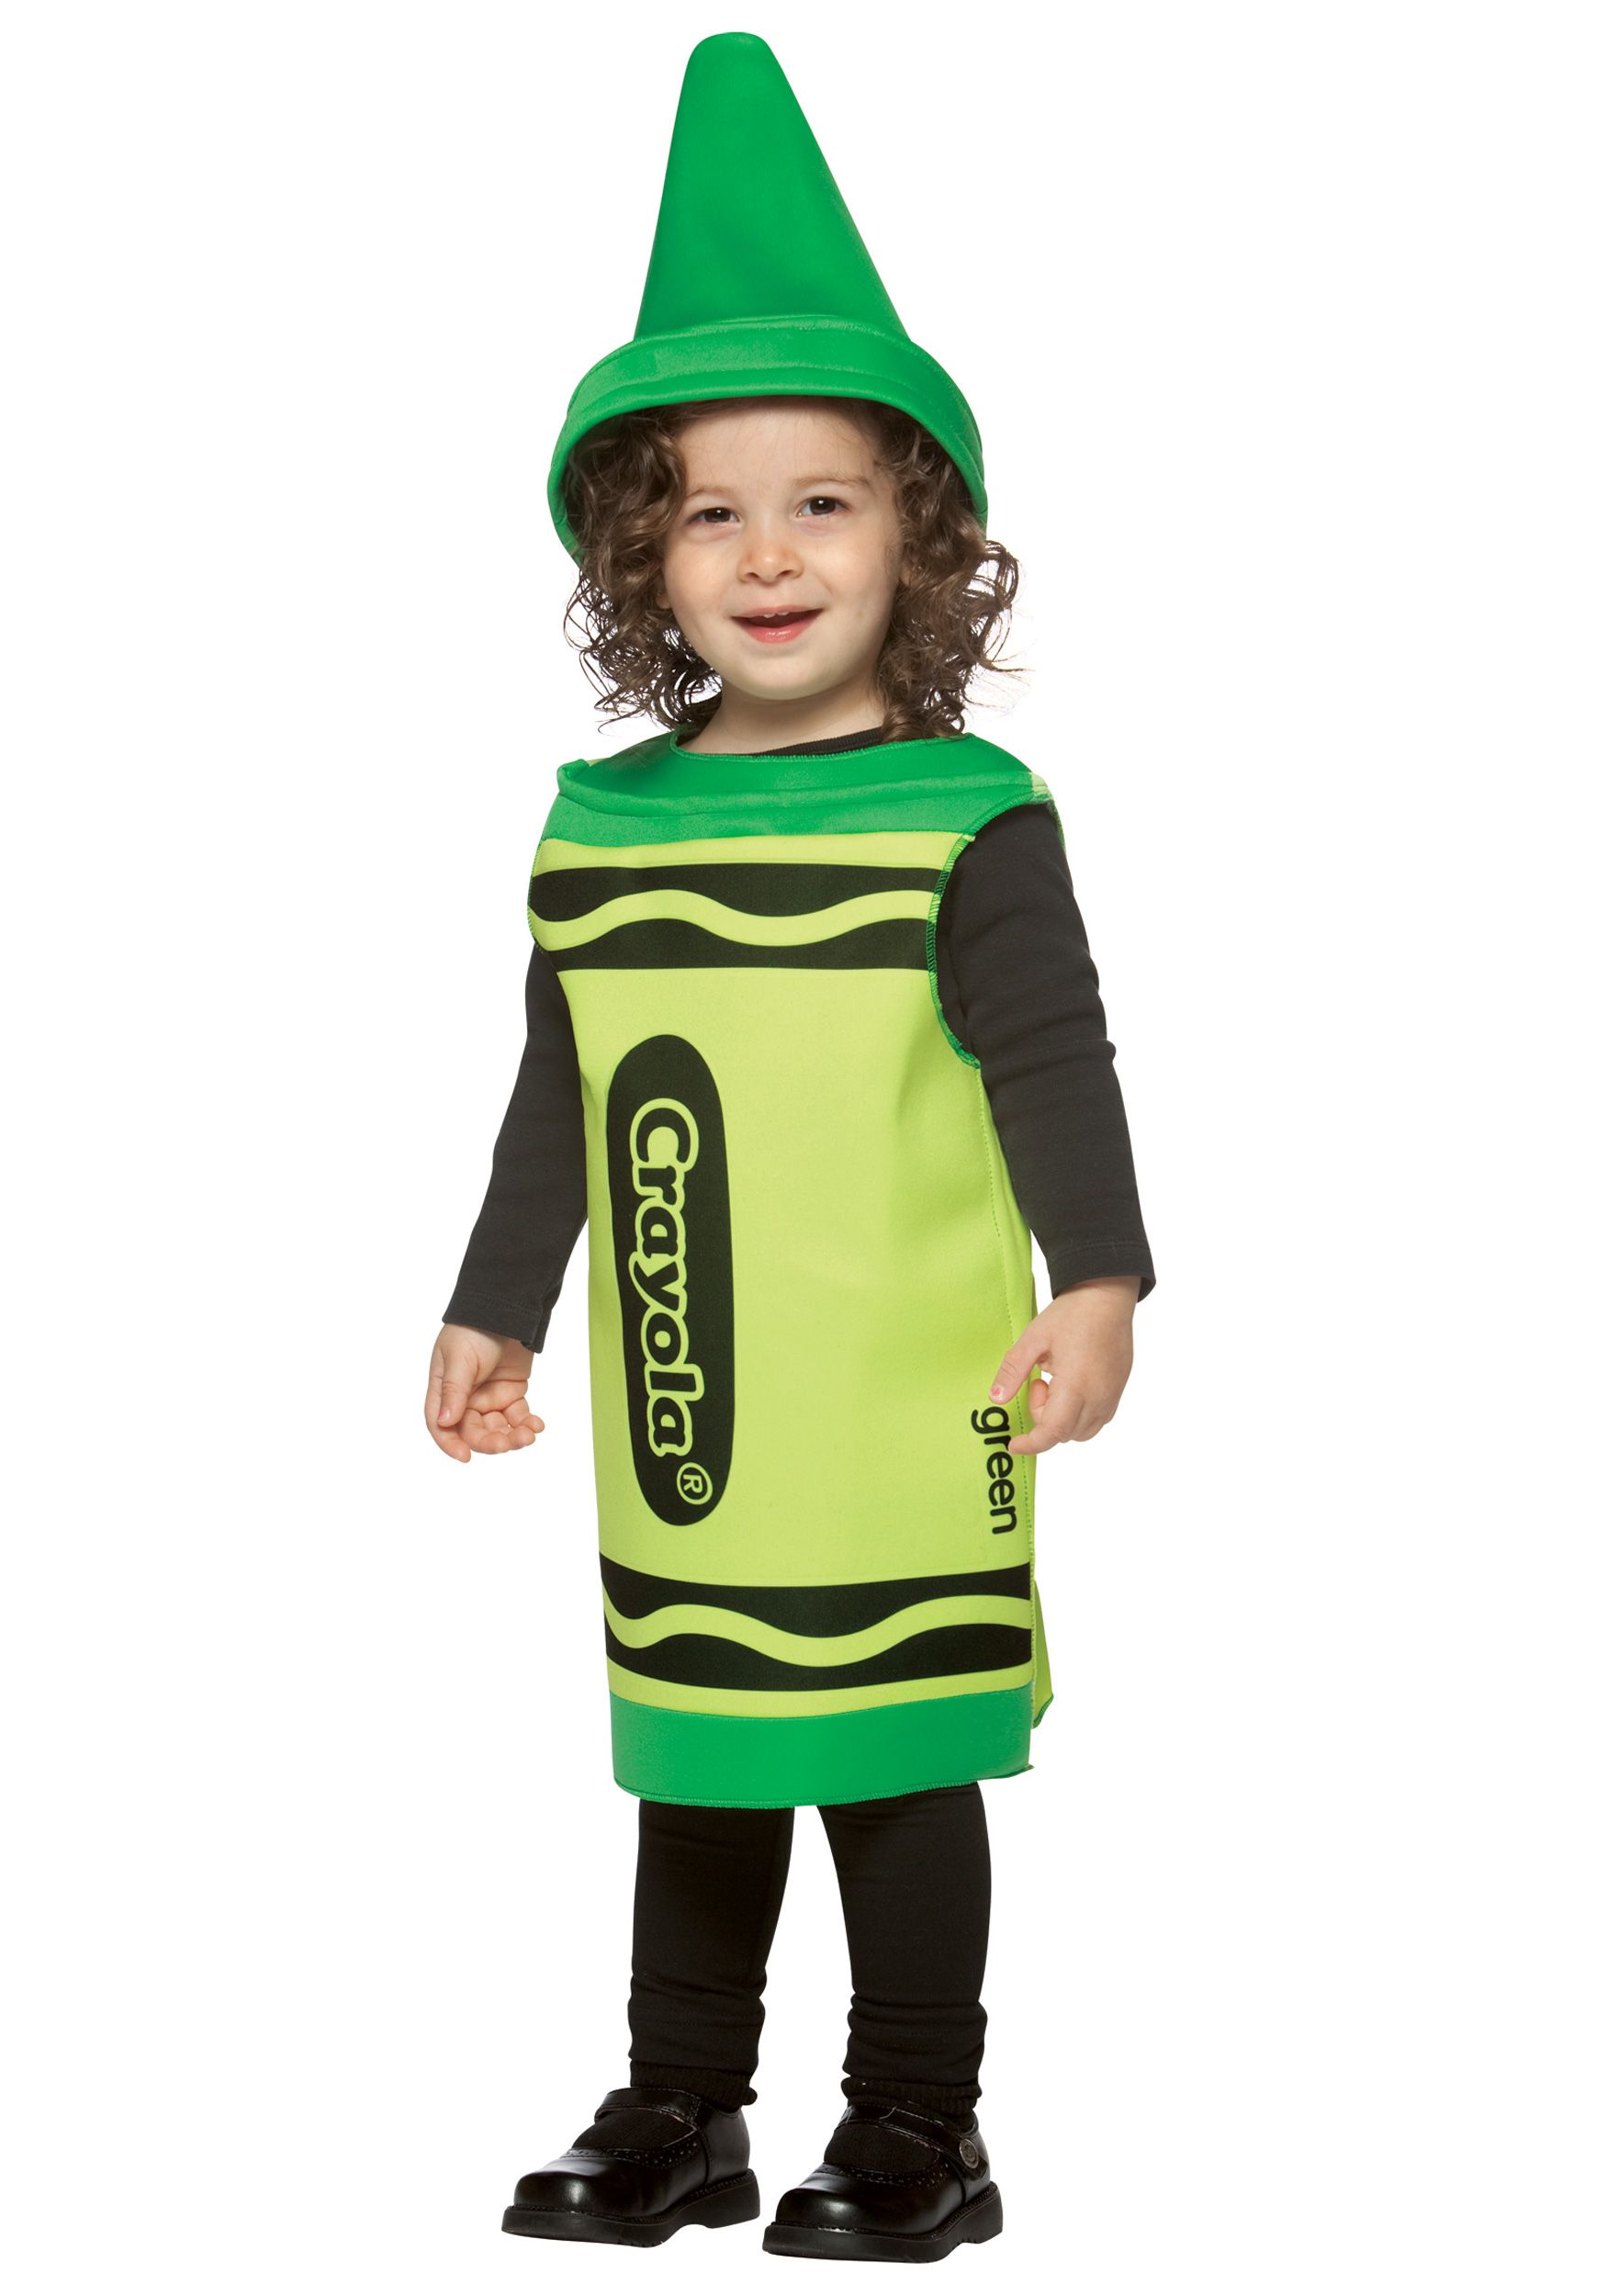 Toddler Green Crayon Costume  sc 1 st  Pinterest & Toddler Green Crayon Costume | costumes | Pinterest | Crayons ...